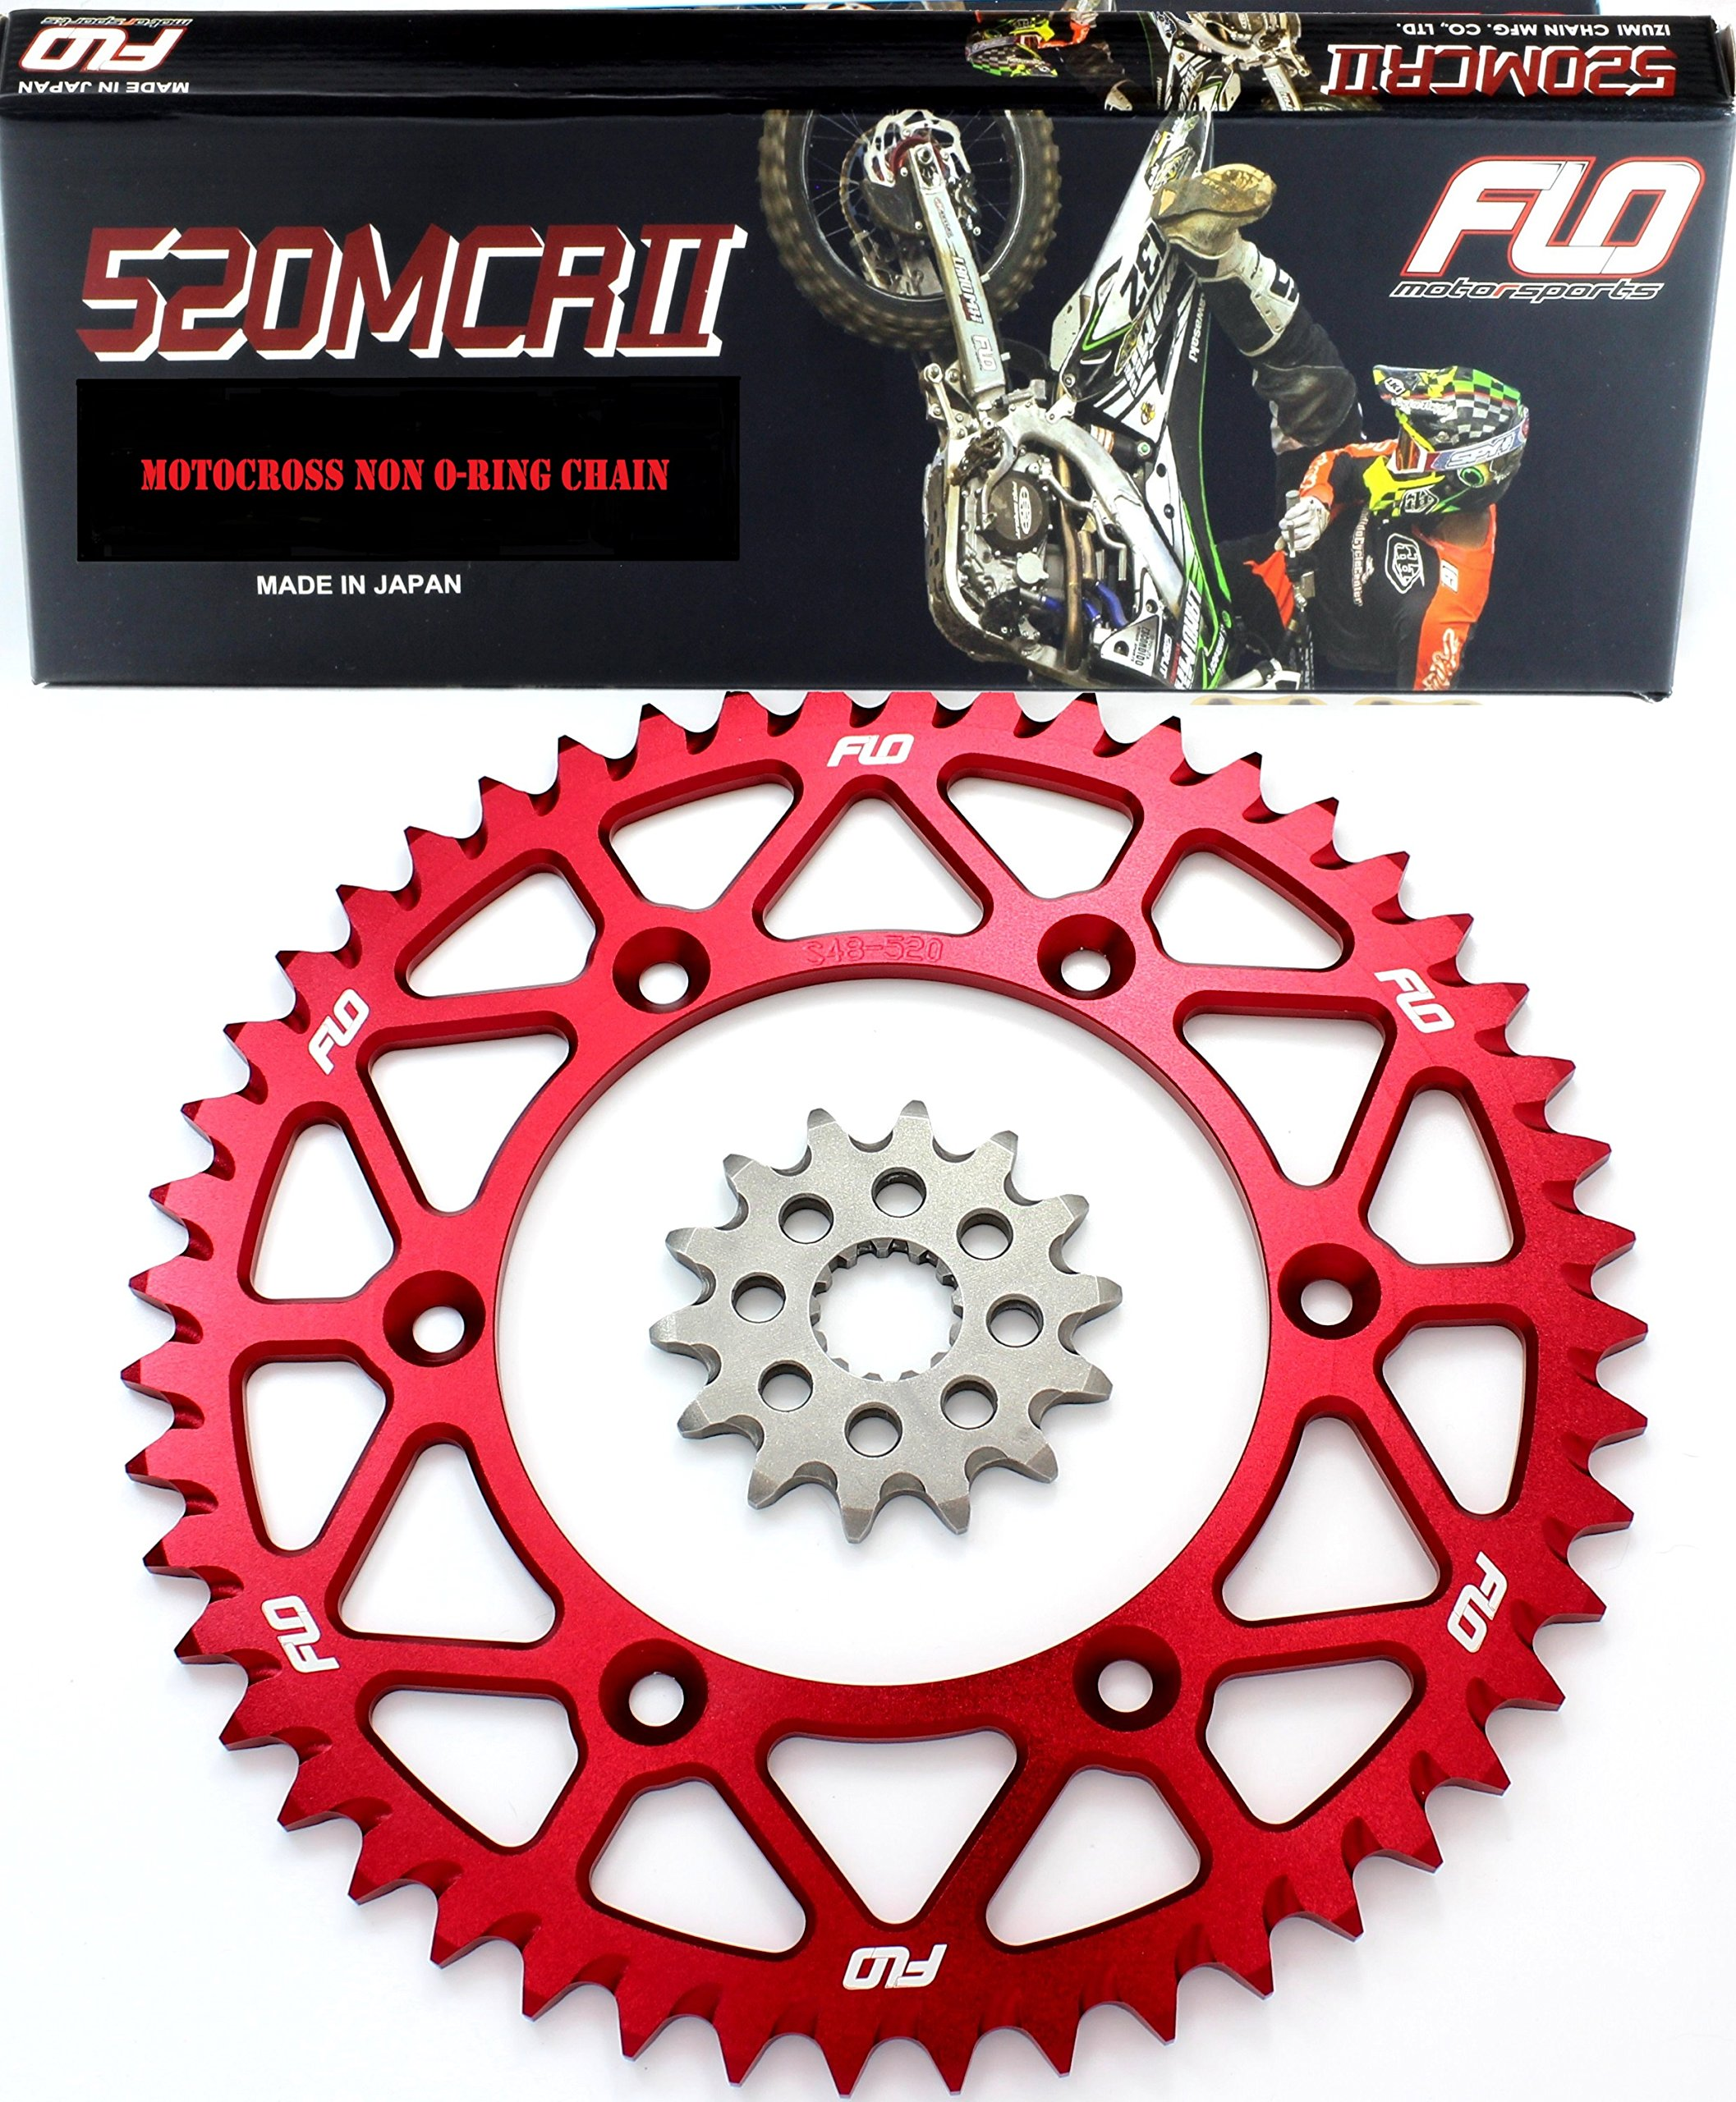 Flo Motorsports Gold Chain & Sprocket Combo Kit HONDA CRF250 CR125 CRF250R FRONT SPROCKET 13T / REAR SPROCKET 48, 49, 50, 51, 53 TOOTH (53T, Red)